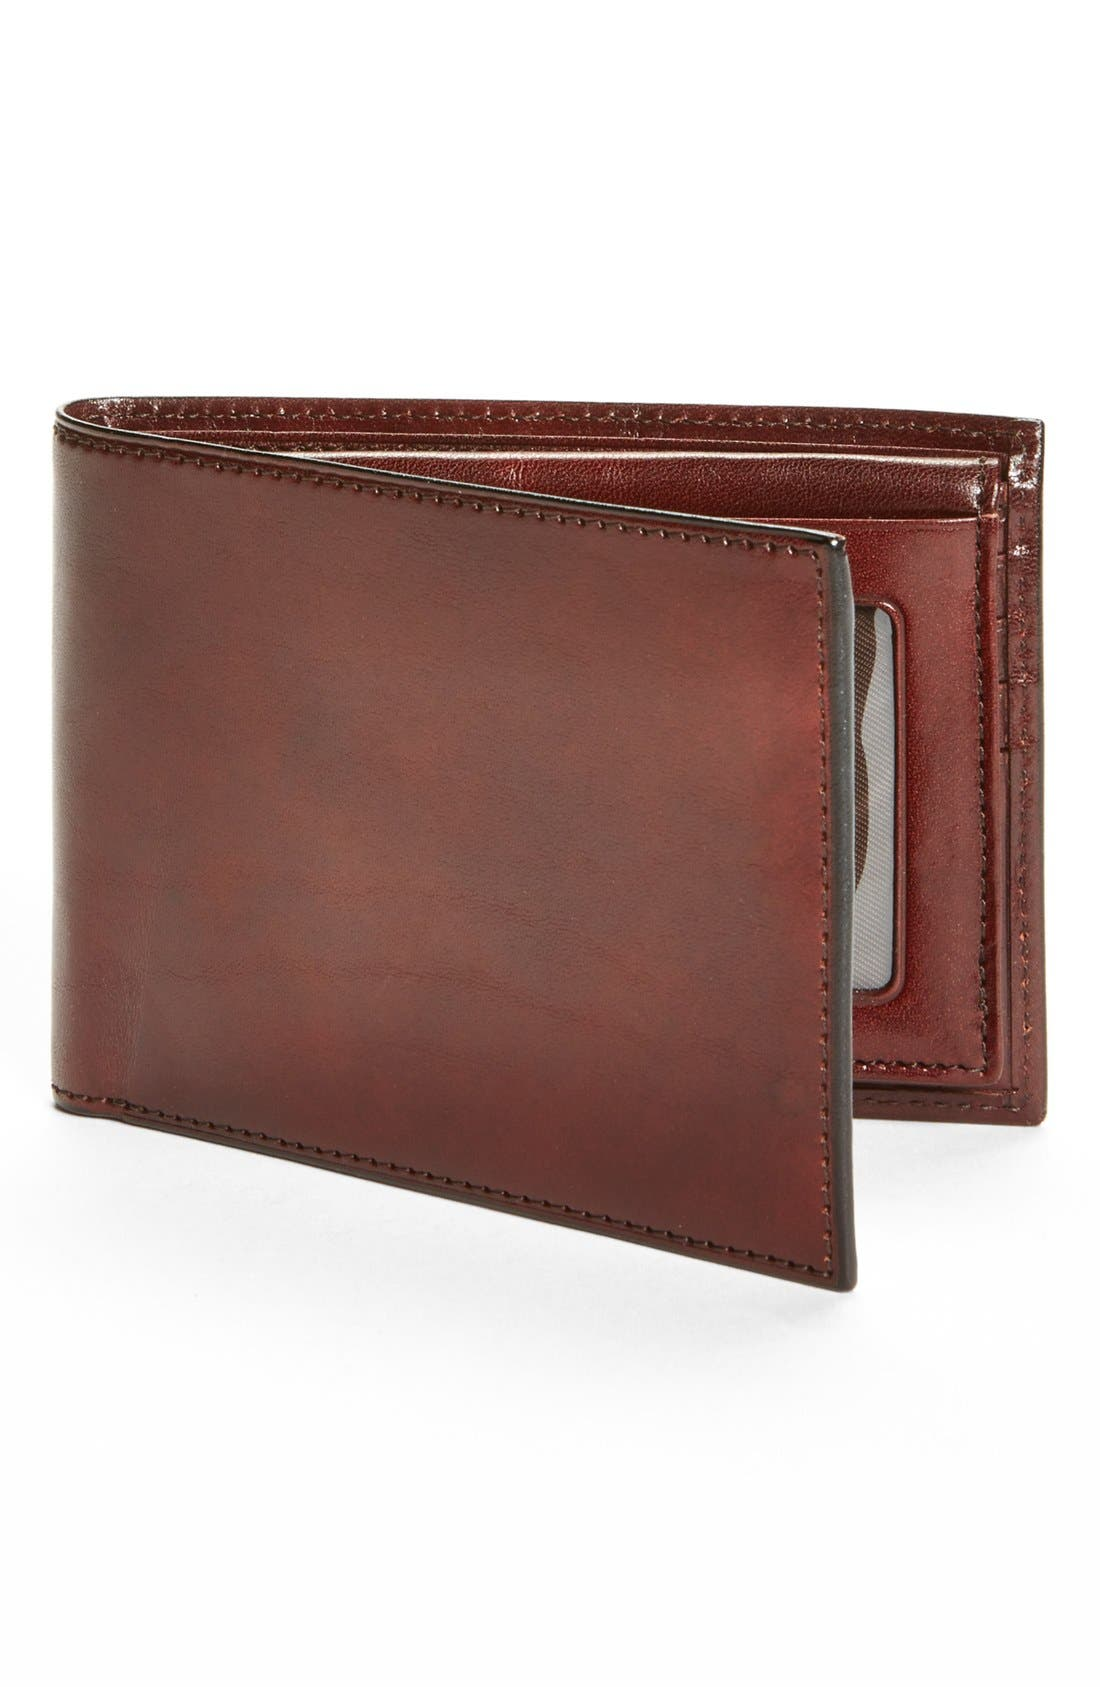 Alternate Image 1 Selected - Bosca ID Passcase Wallet